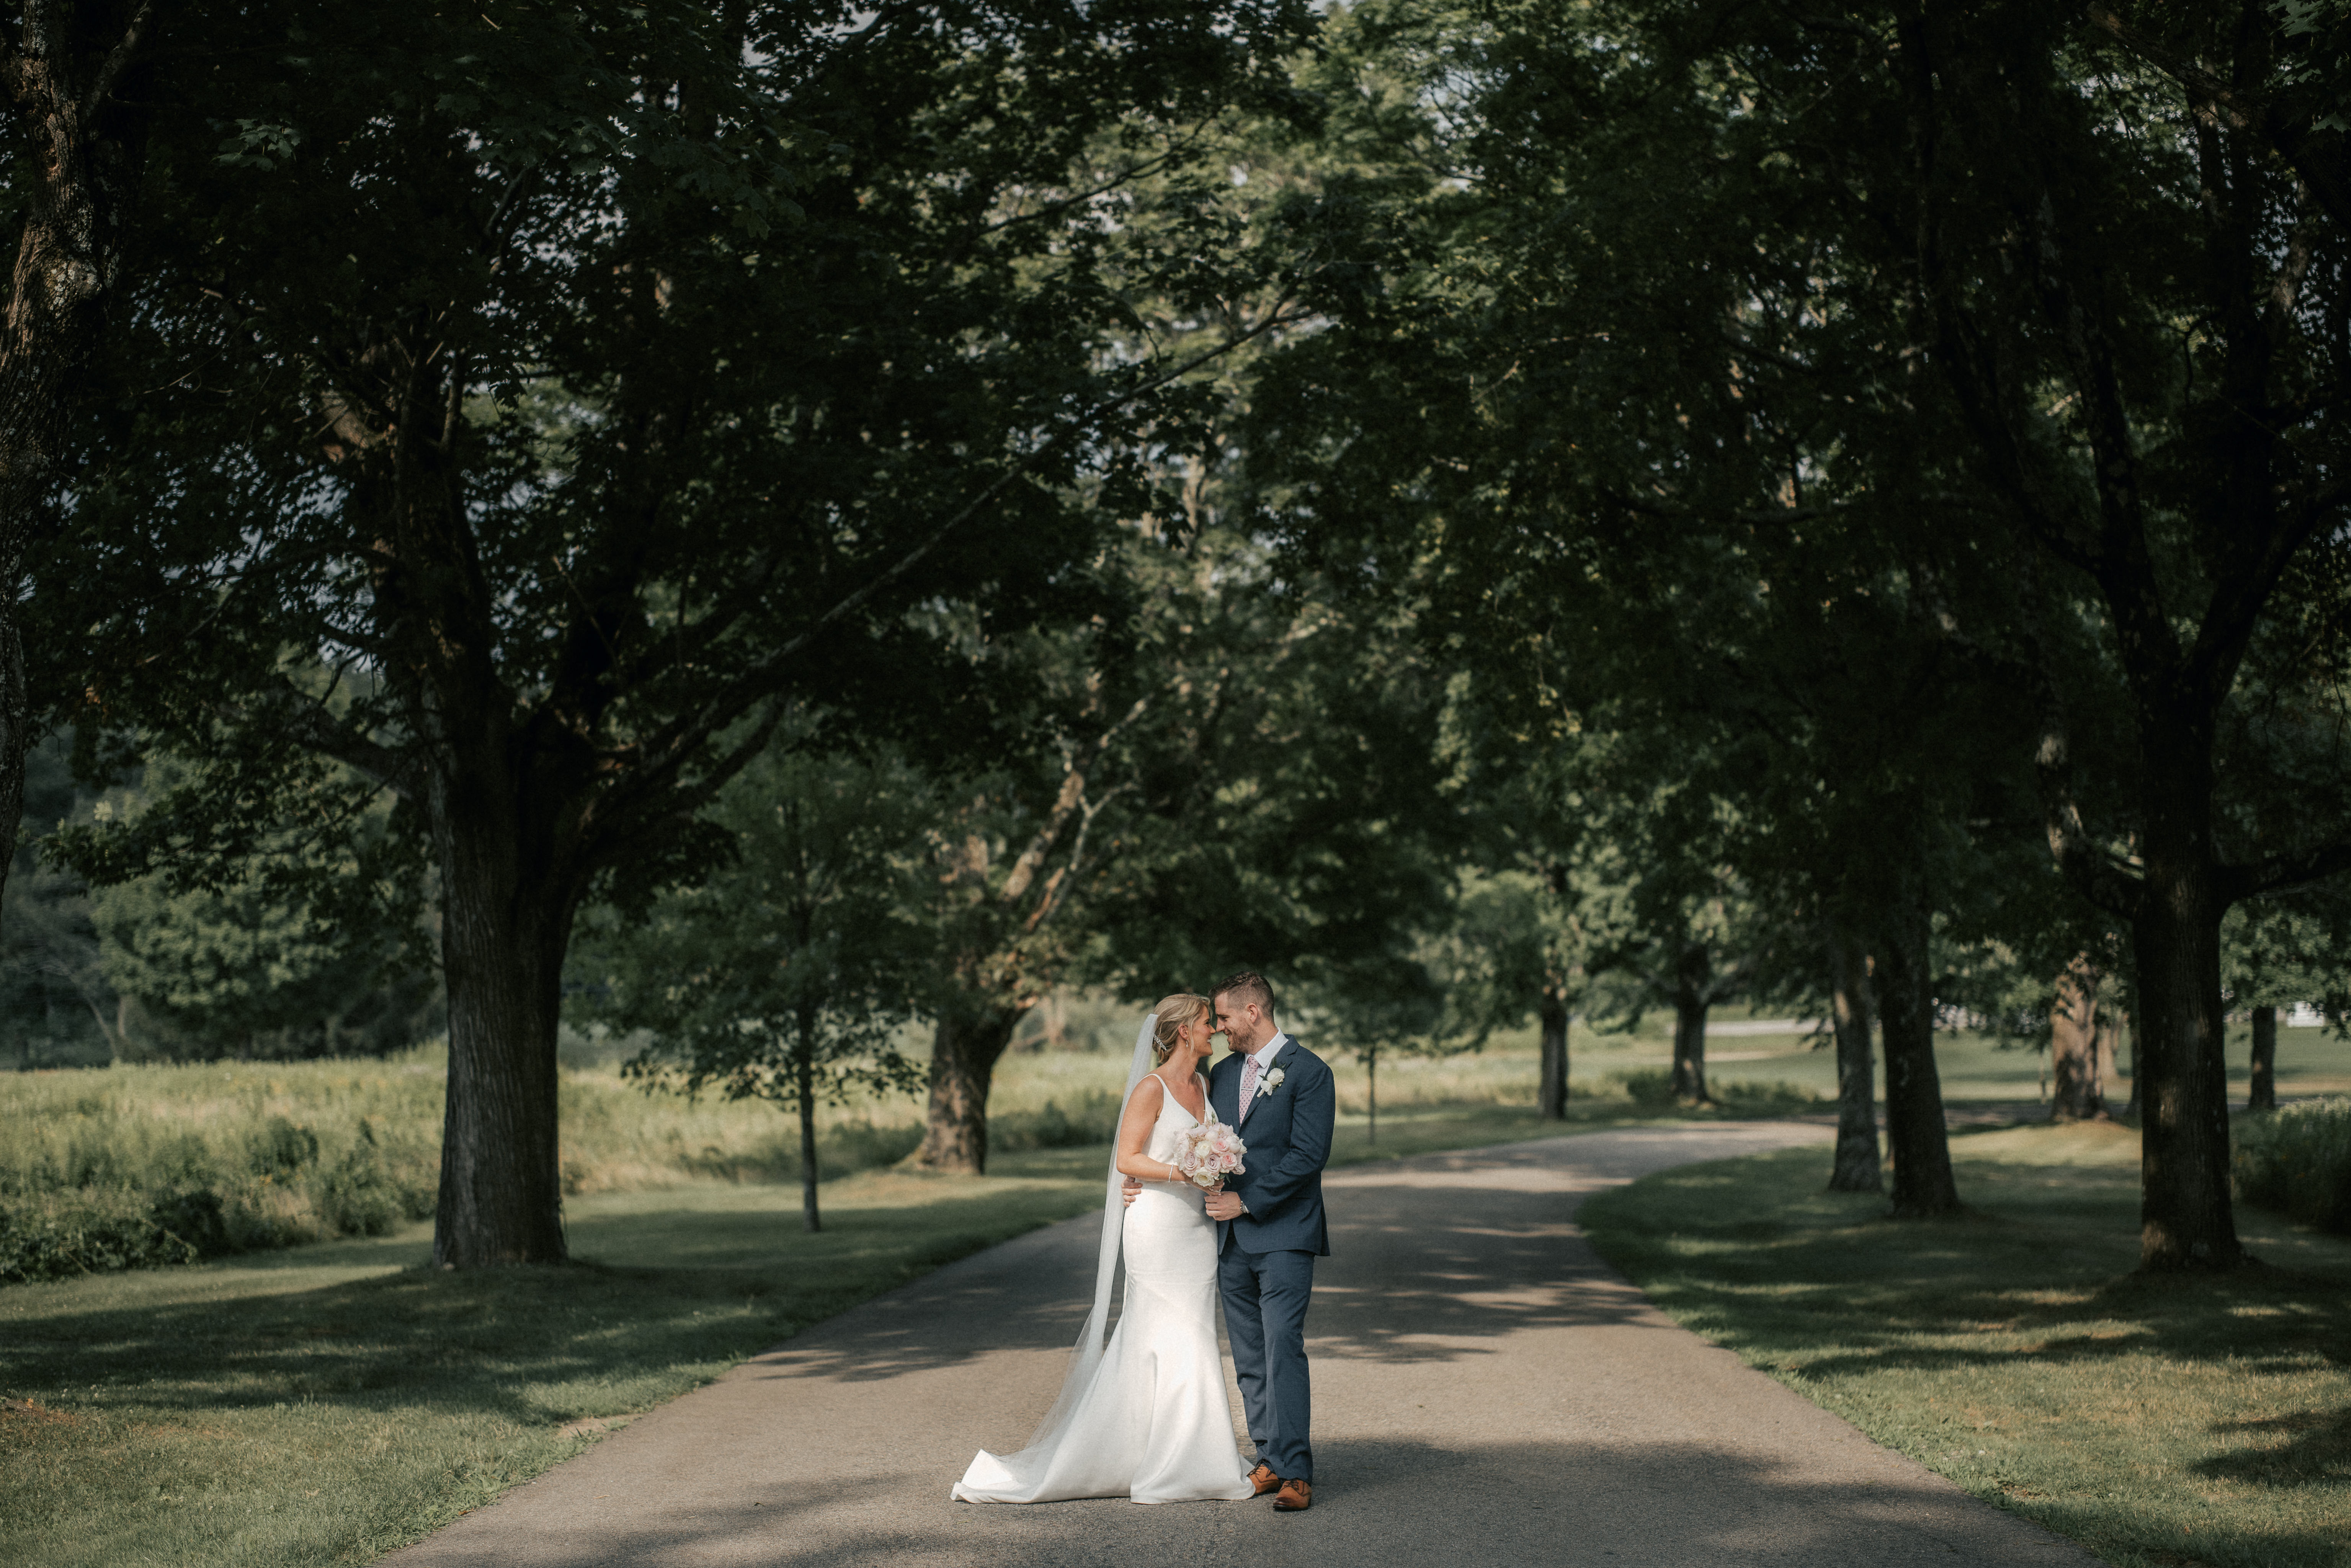 Bride and Groom pose and smile for a photo on forest road at a Hudson Valley wedding at The Garrison